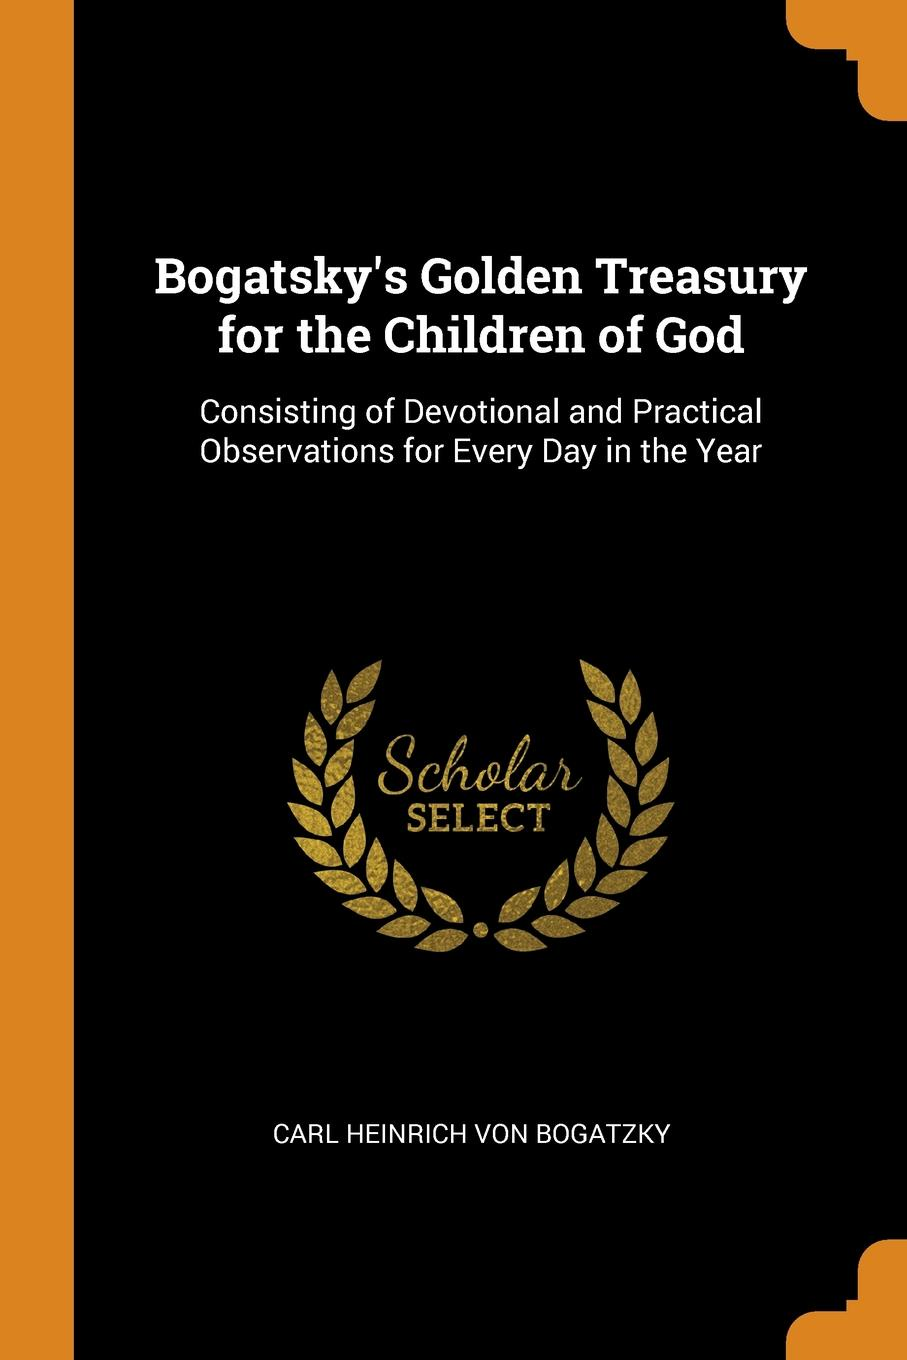 Bogatsky.s Golden Treasury for the Children of God. Consisting of Devotional and Practical Observations for Every Day in the Year